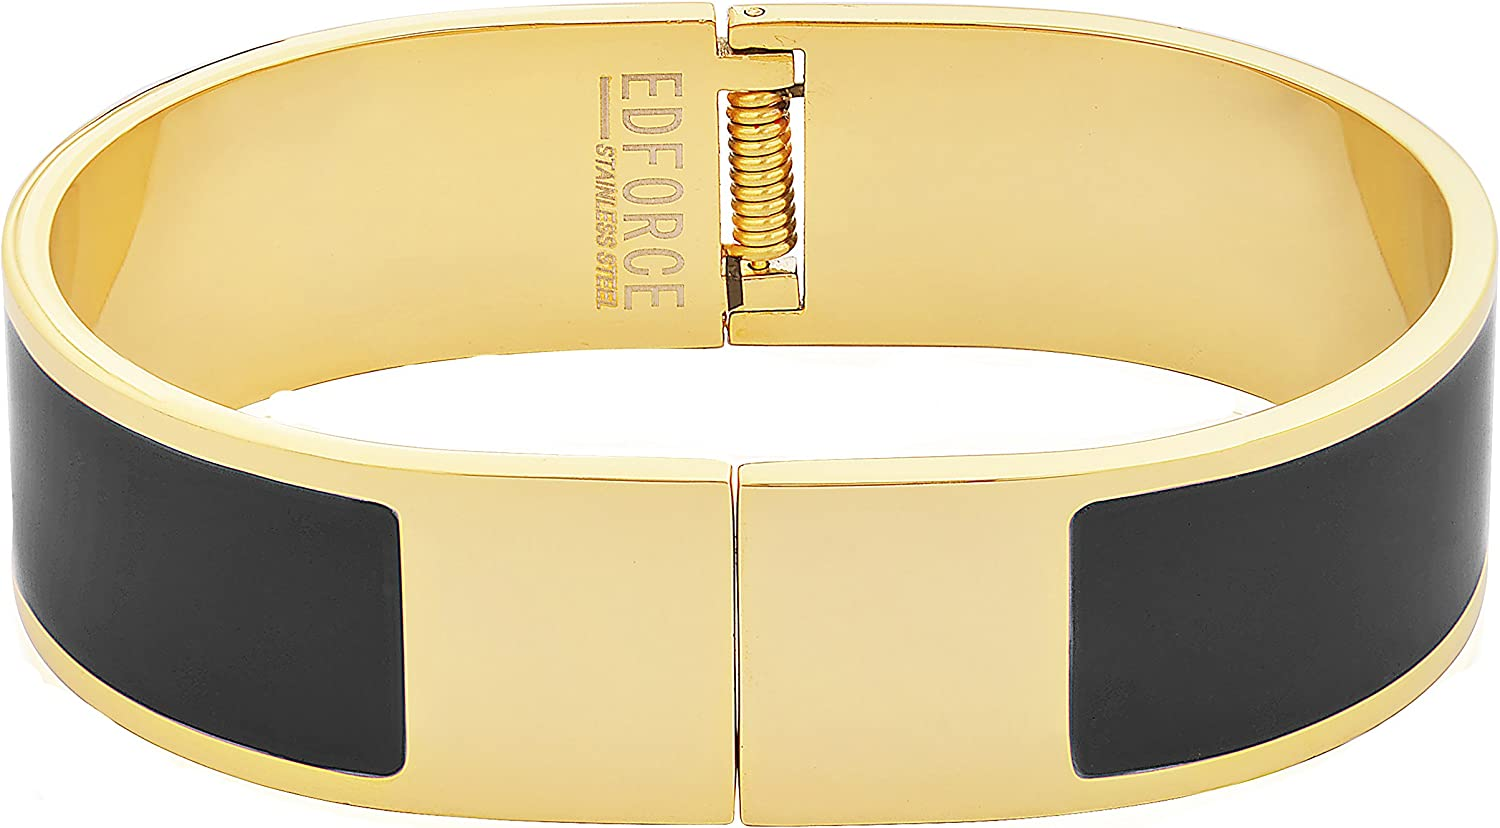 EDFORCE Stainless Steel Women's Gold Plated   H Shaped Buckle Bracelet   Bangle Colored Enameled Colored Stackable, 64mm Diameter (2.6in)